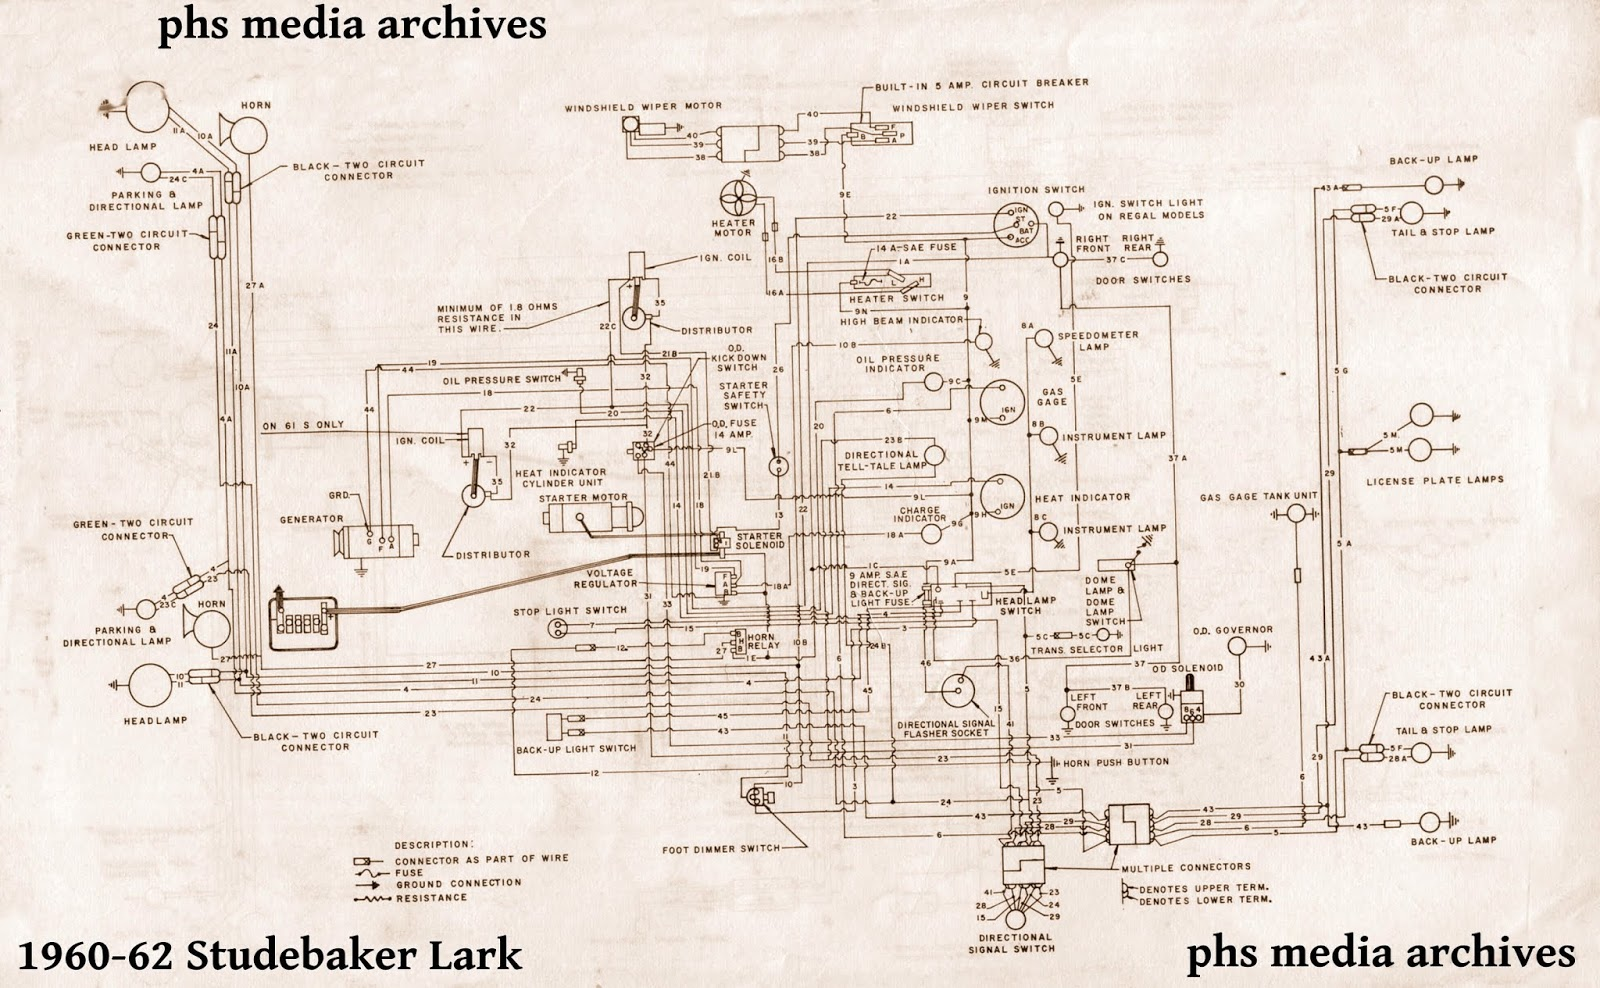 medium resolution of tech series studebaker lark cruiser wiring diagrams 1950 studebaker champion turn signal circuit diagram shown here